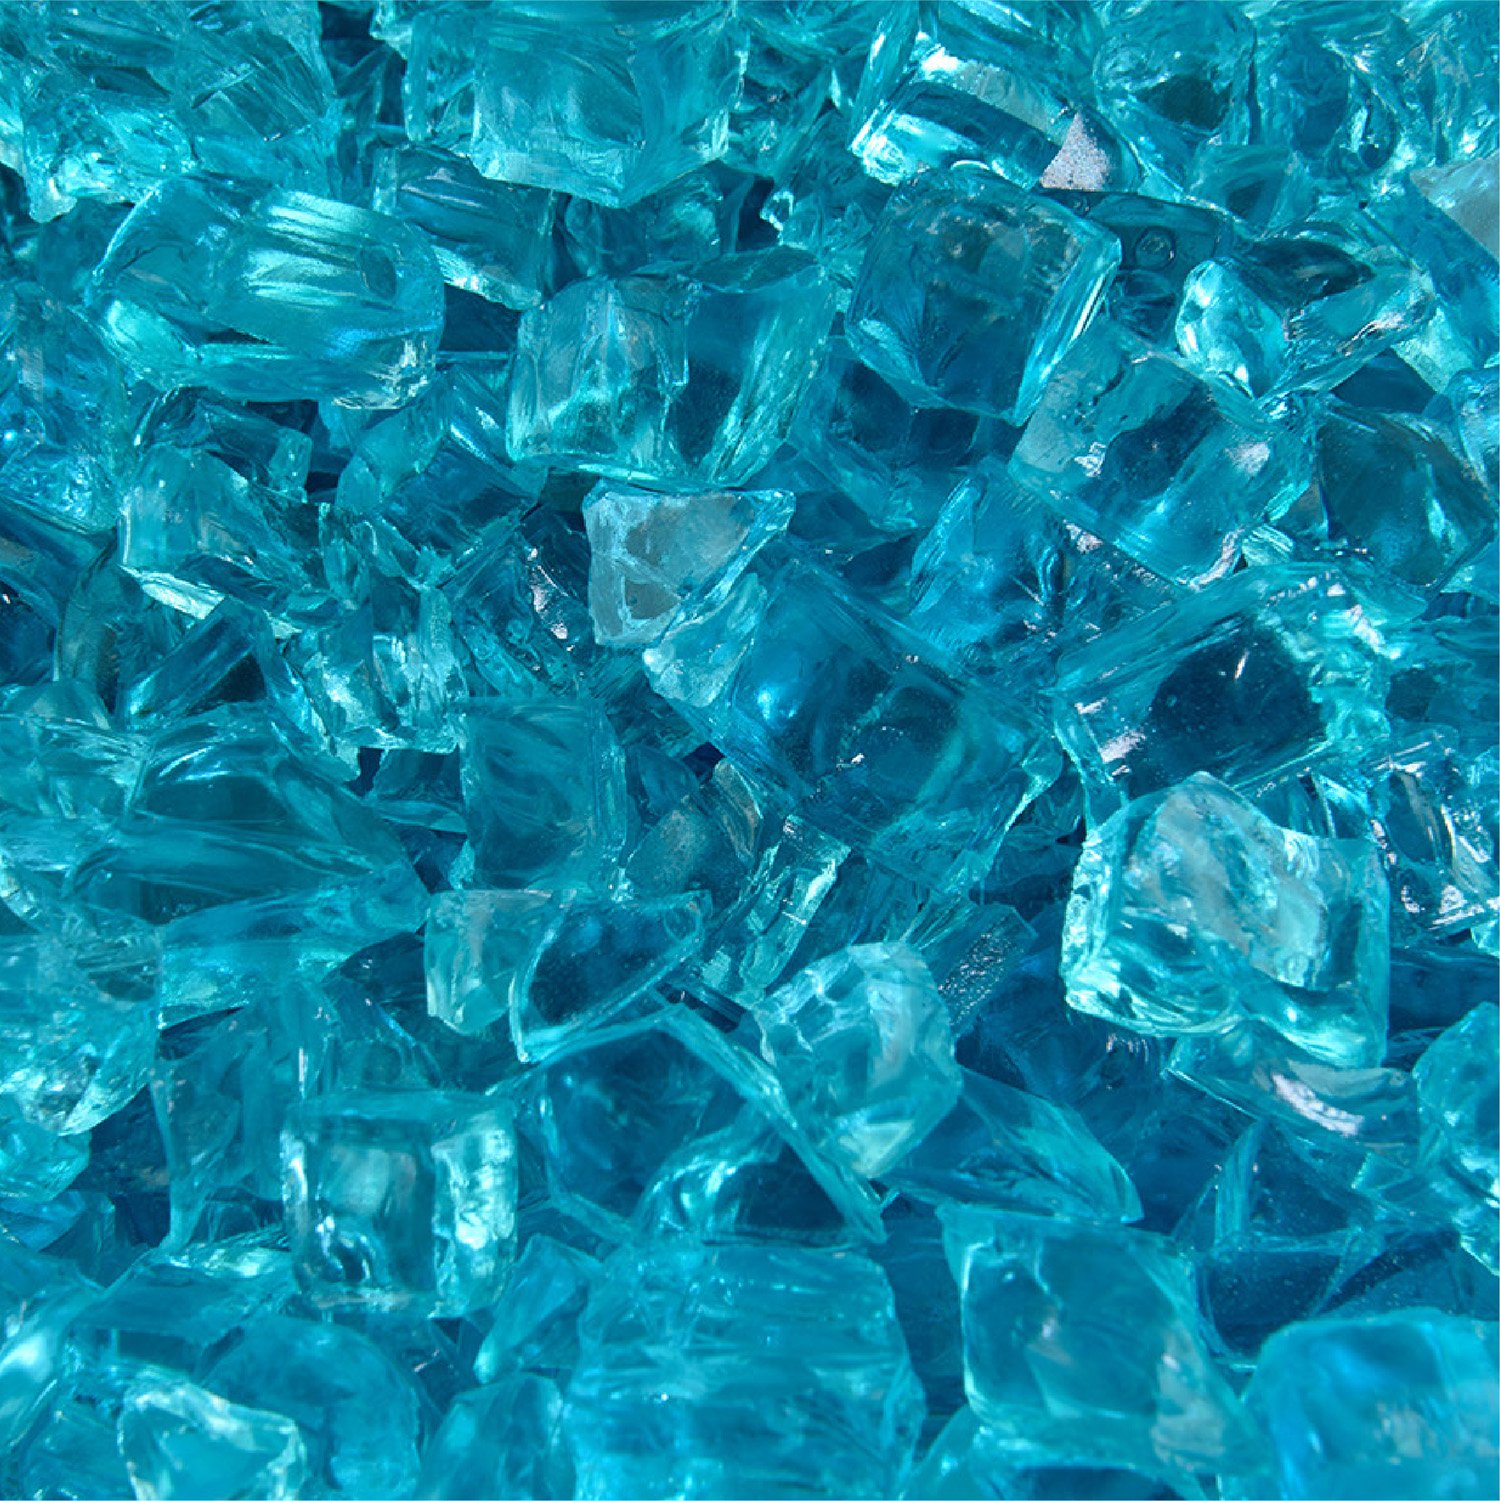 c883bdbde Tahitian Blue Azuria - Fire Glass for Indoor and Outdoor Fire Pits or  Fireplaces   10